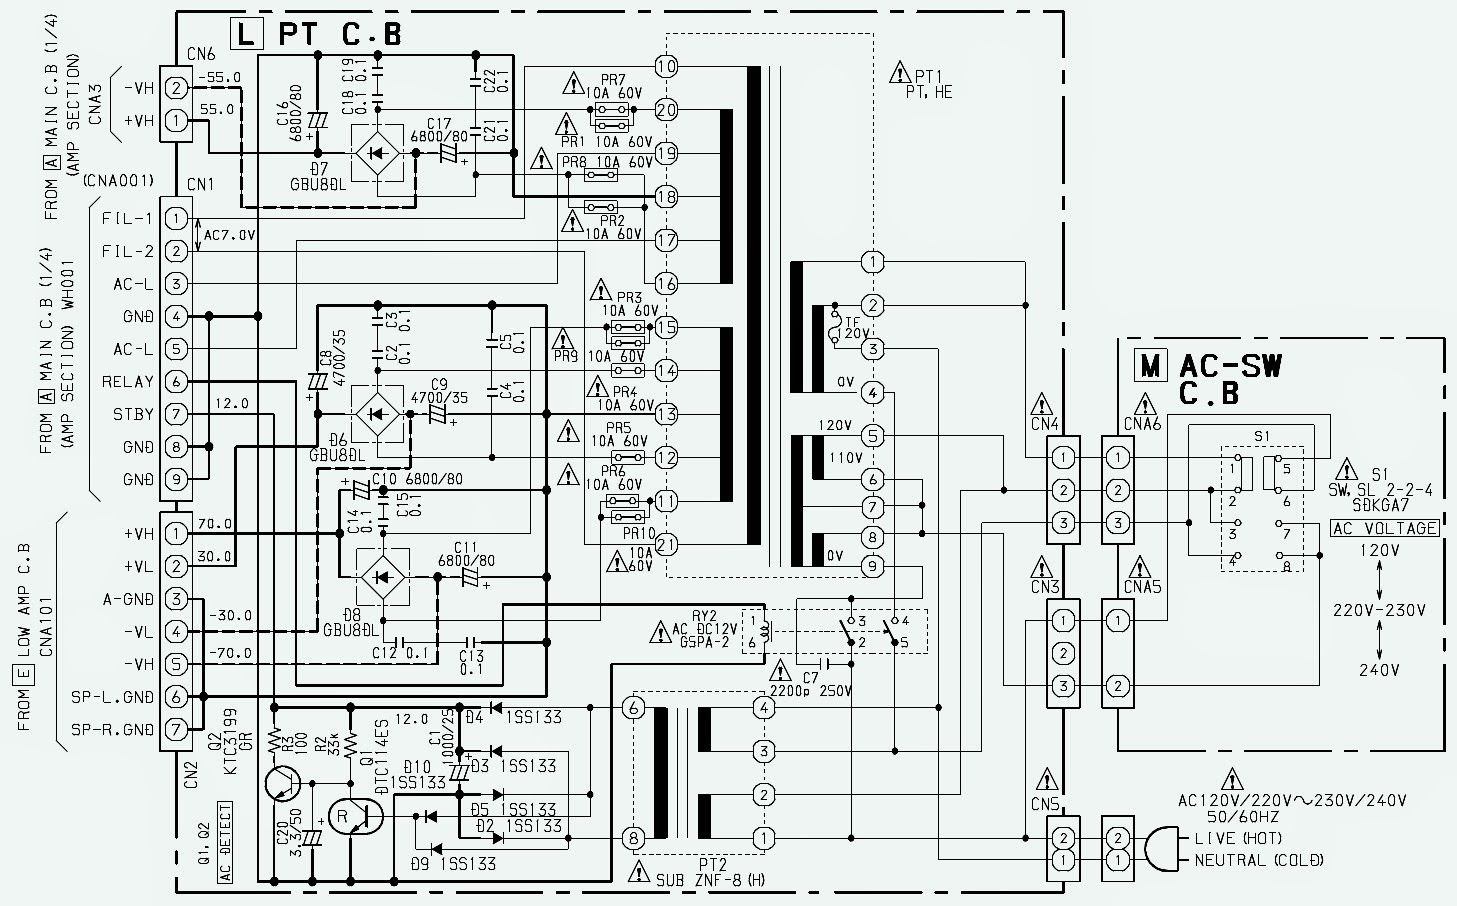 power.bmp aiwa xh a1060 compact disc stereo system schematics electro help aiwa cdc-x144 wiring diagram at bayanpartner.co